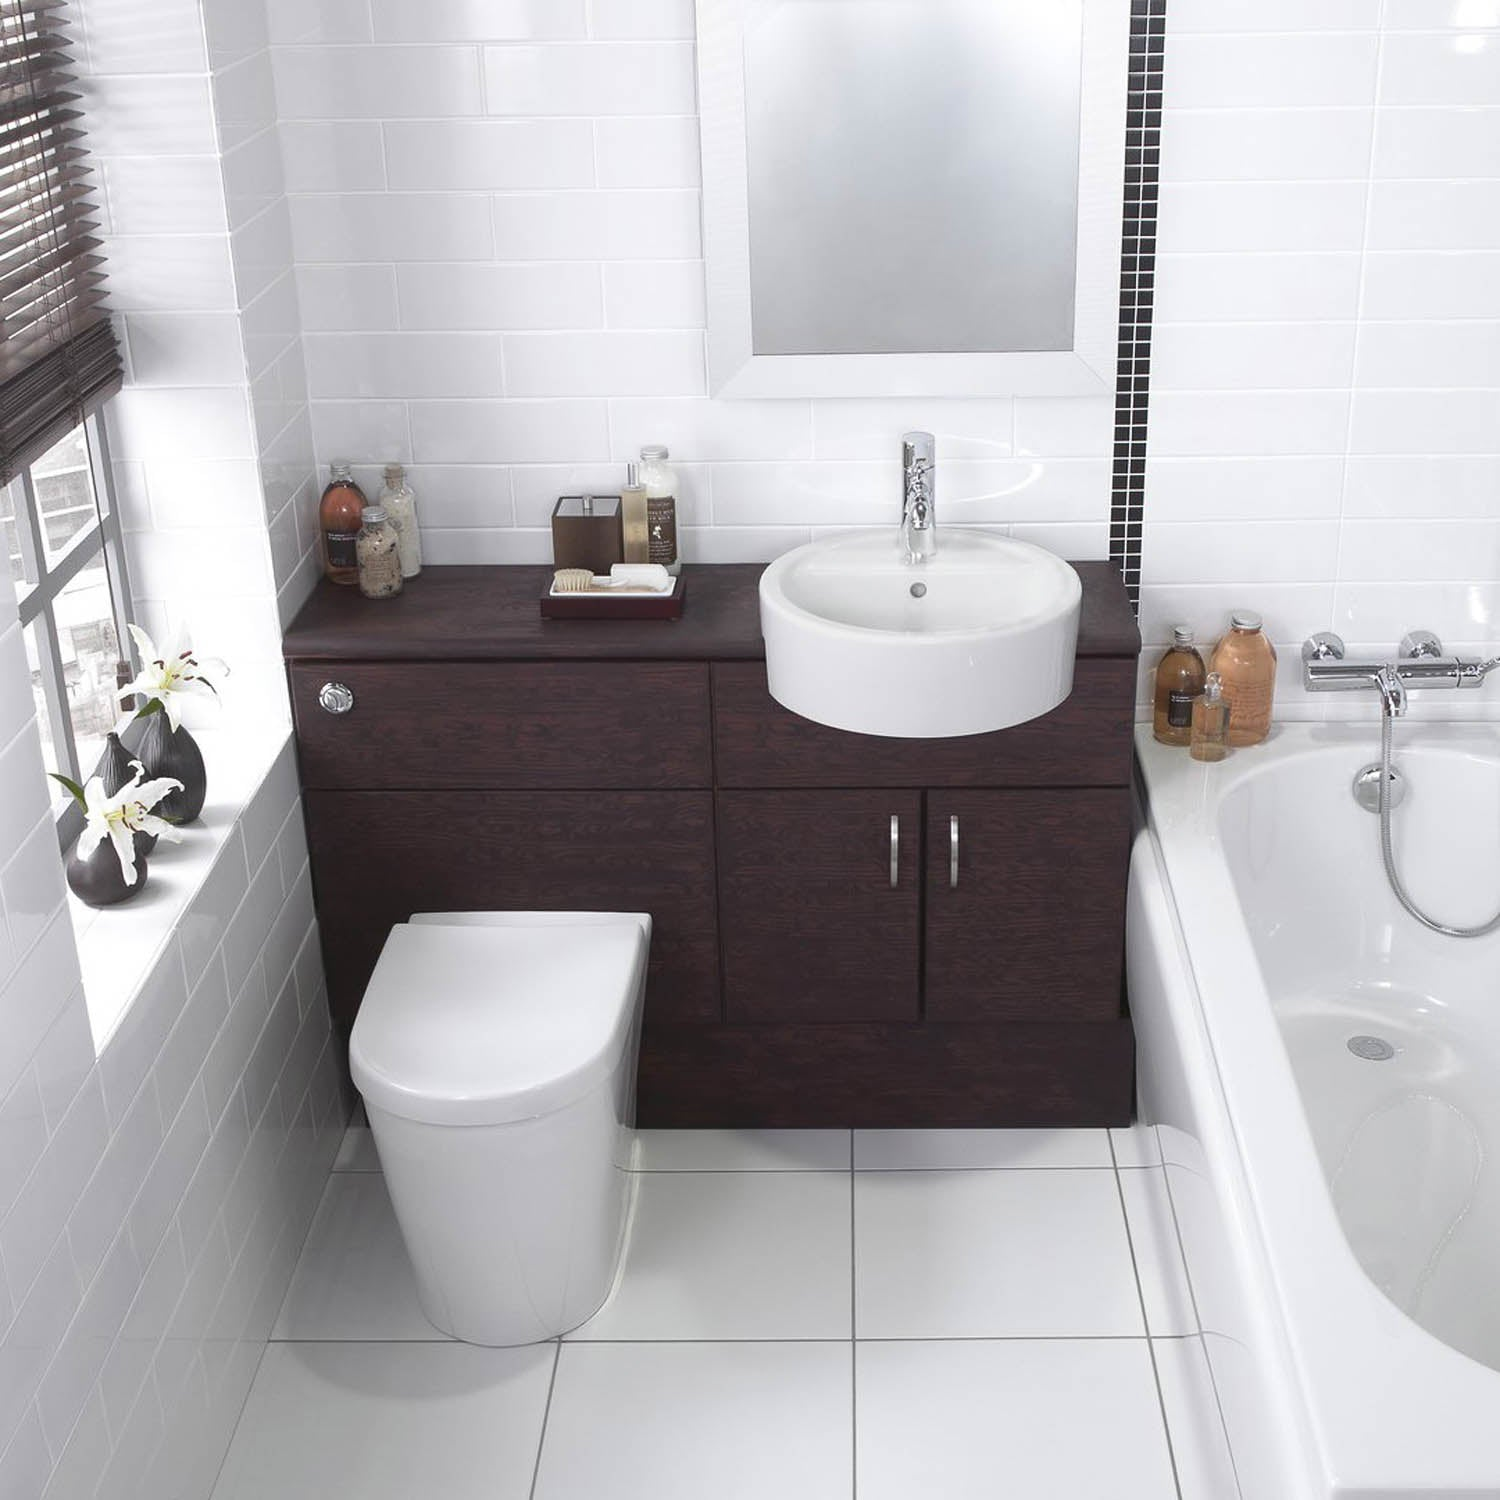 750mm Matrix Long Projection Back to Wall Toilet without a seat and cover lifestyle image